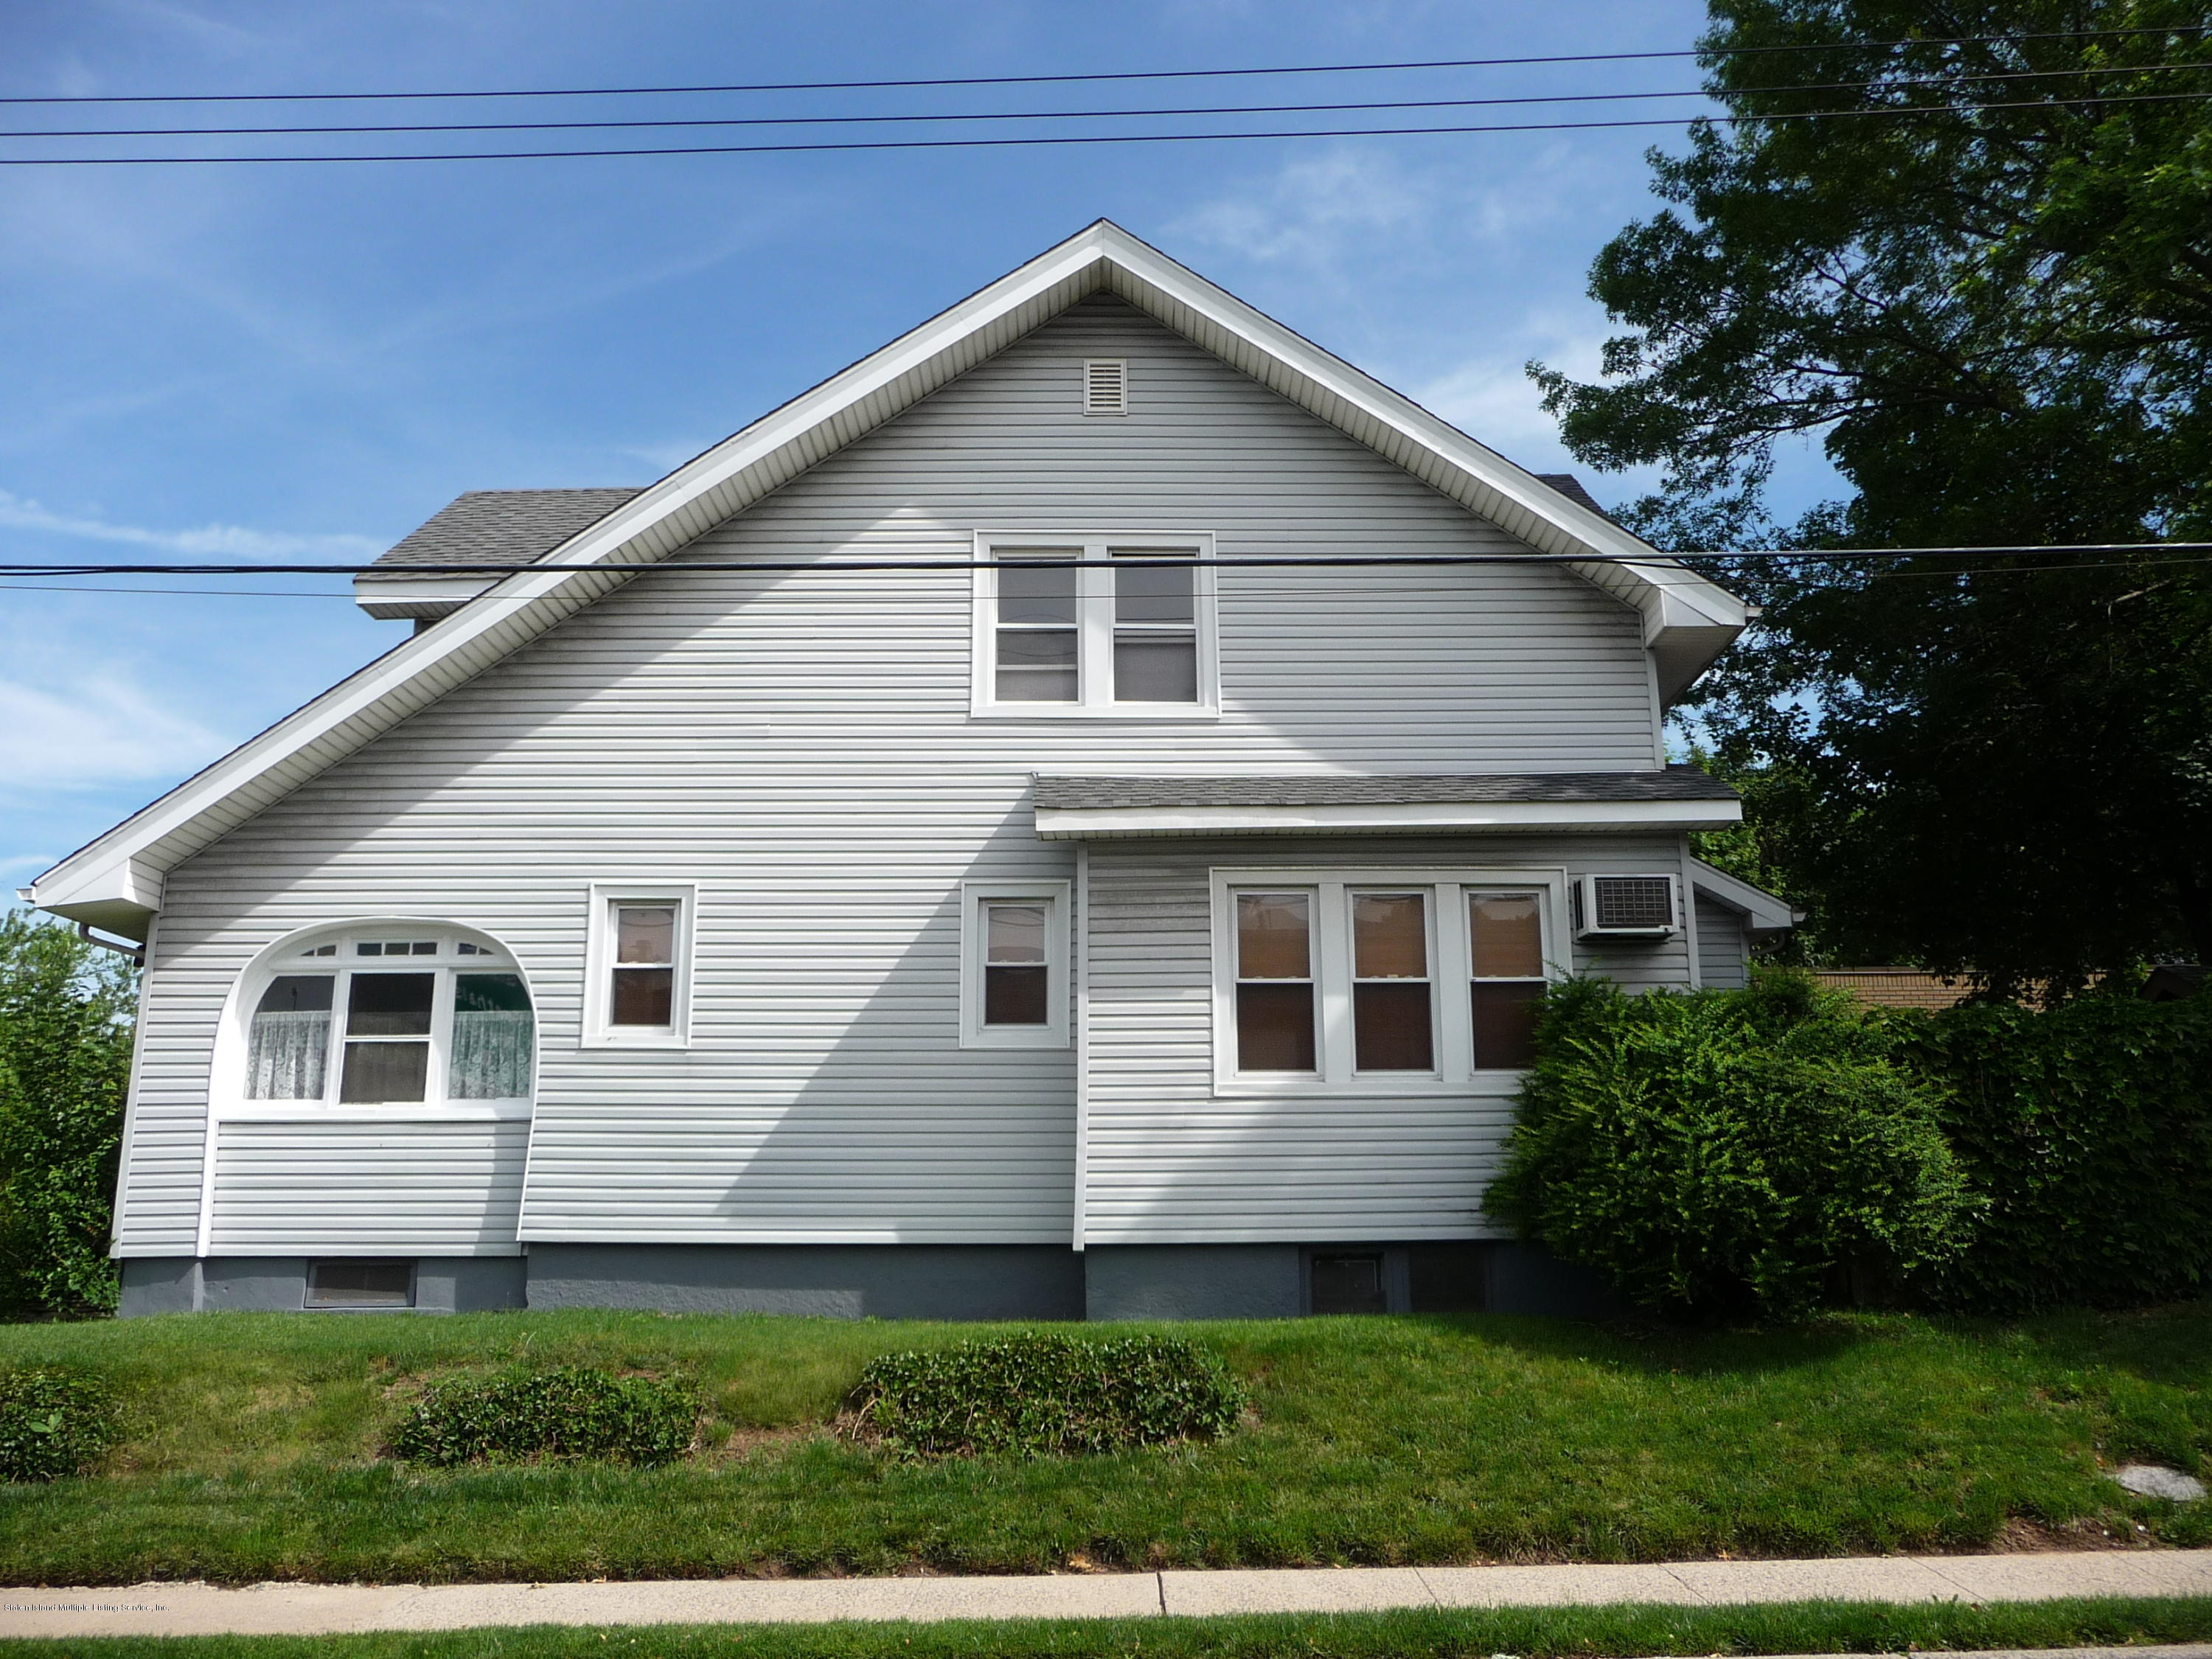 Single Family - Detached 77 Todt Hill Road  Staten Island, NY 10314, MLS-1129718-5